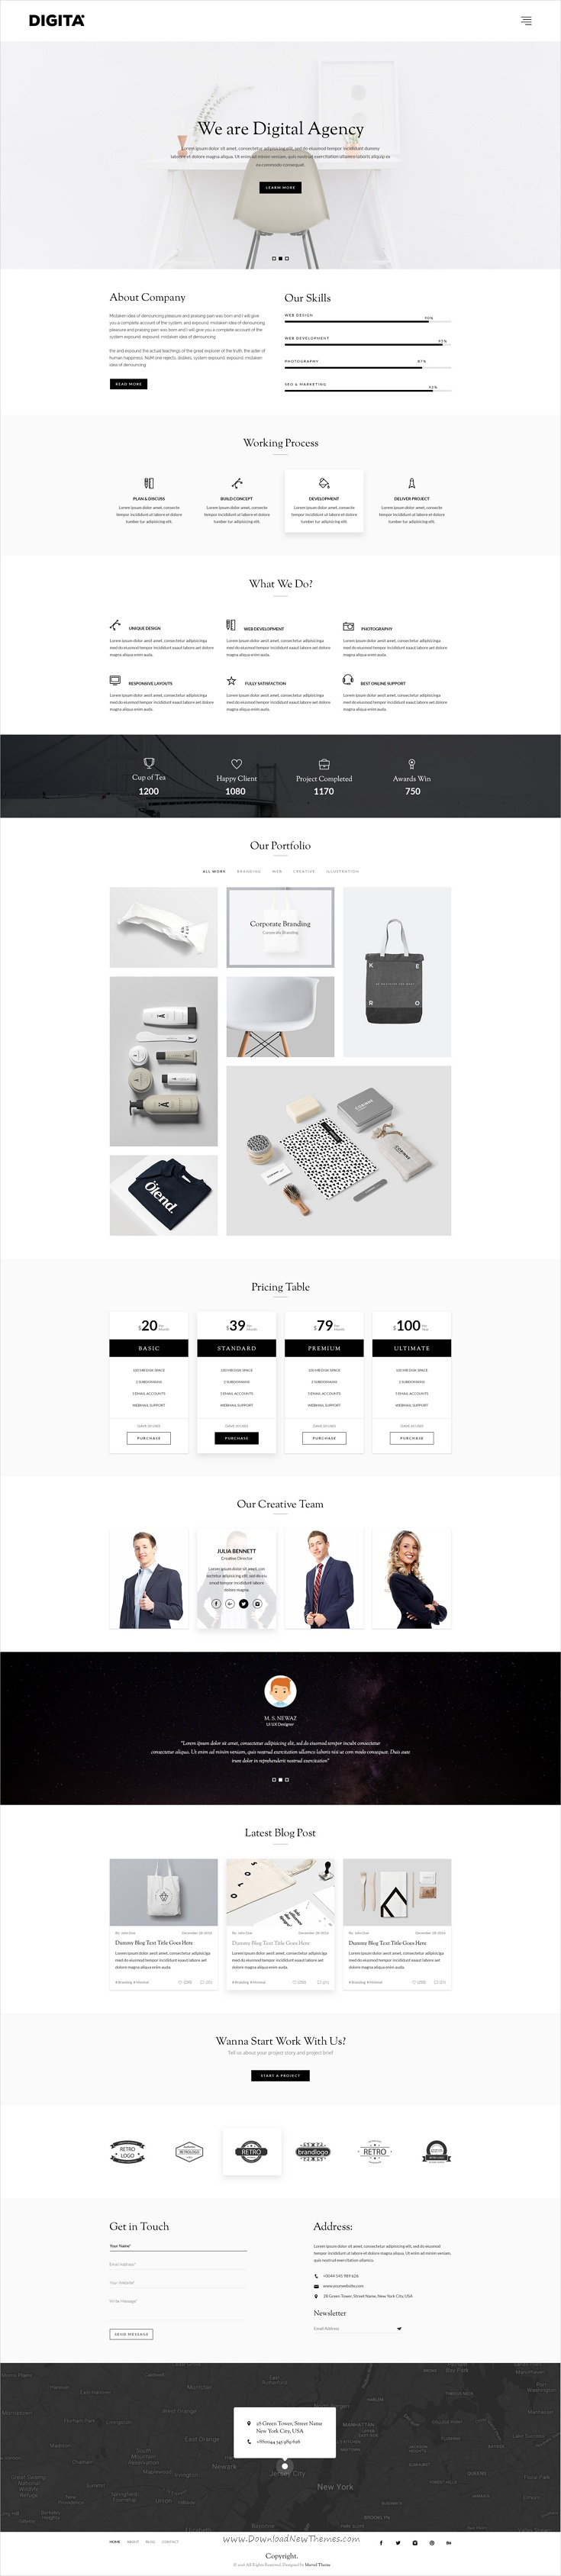 Maxive is a #minimal multipurpose #PSD template for stunning #agency websites with 13+ homepages. 30+ Portfolio pages, 10+ blog pages and 62 organized PSD files download now➩ https://themeforest.net/item/maxive-multipurpose-minimal-agency-personal-photography-portfolio-psd-template/19276049?ref=Datasata